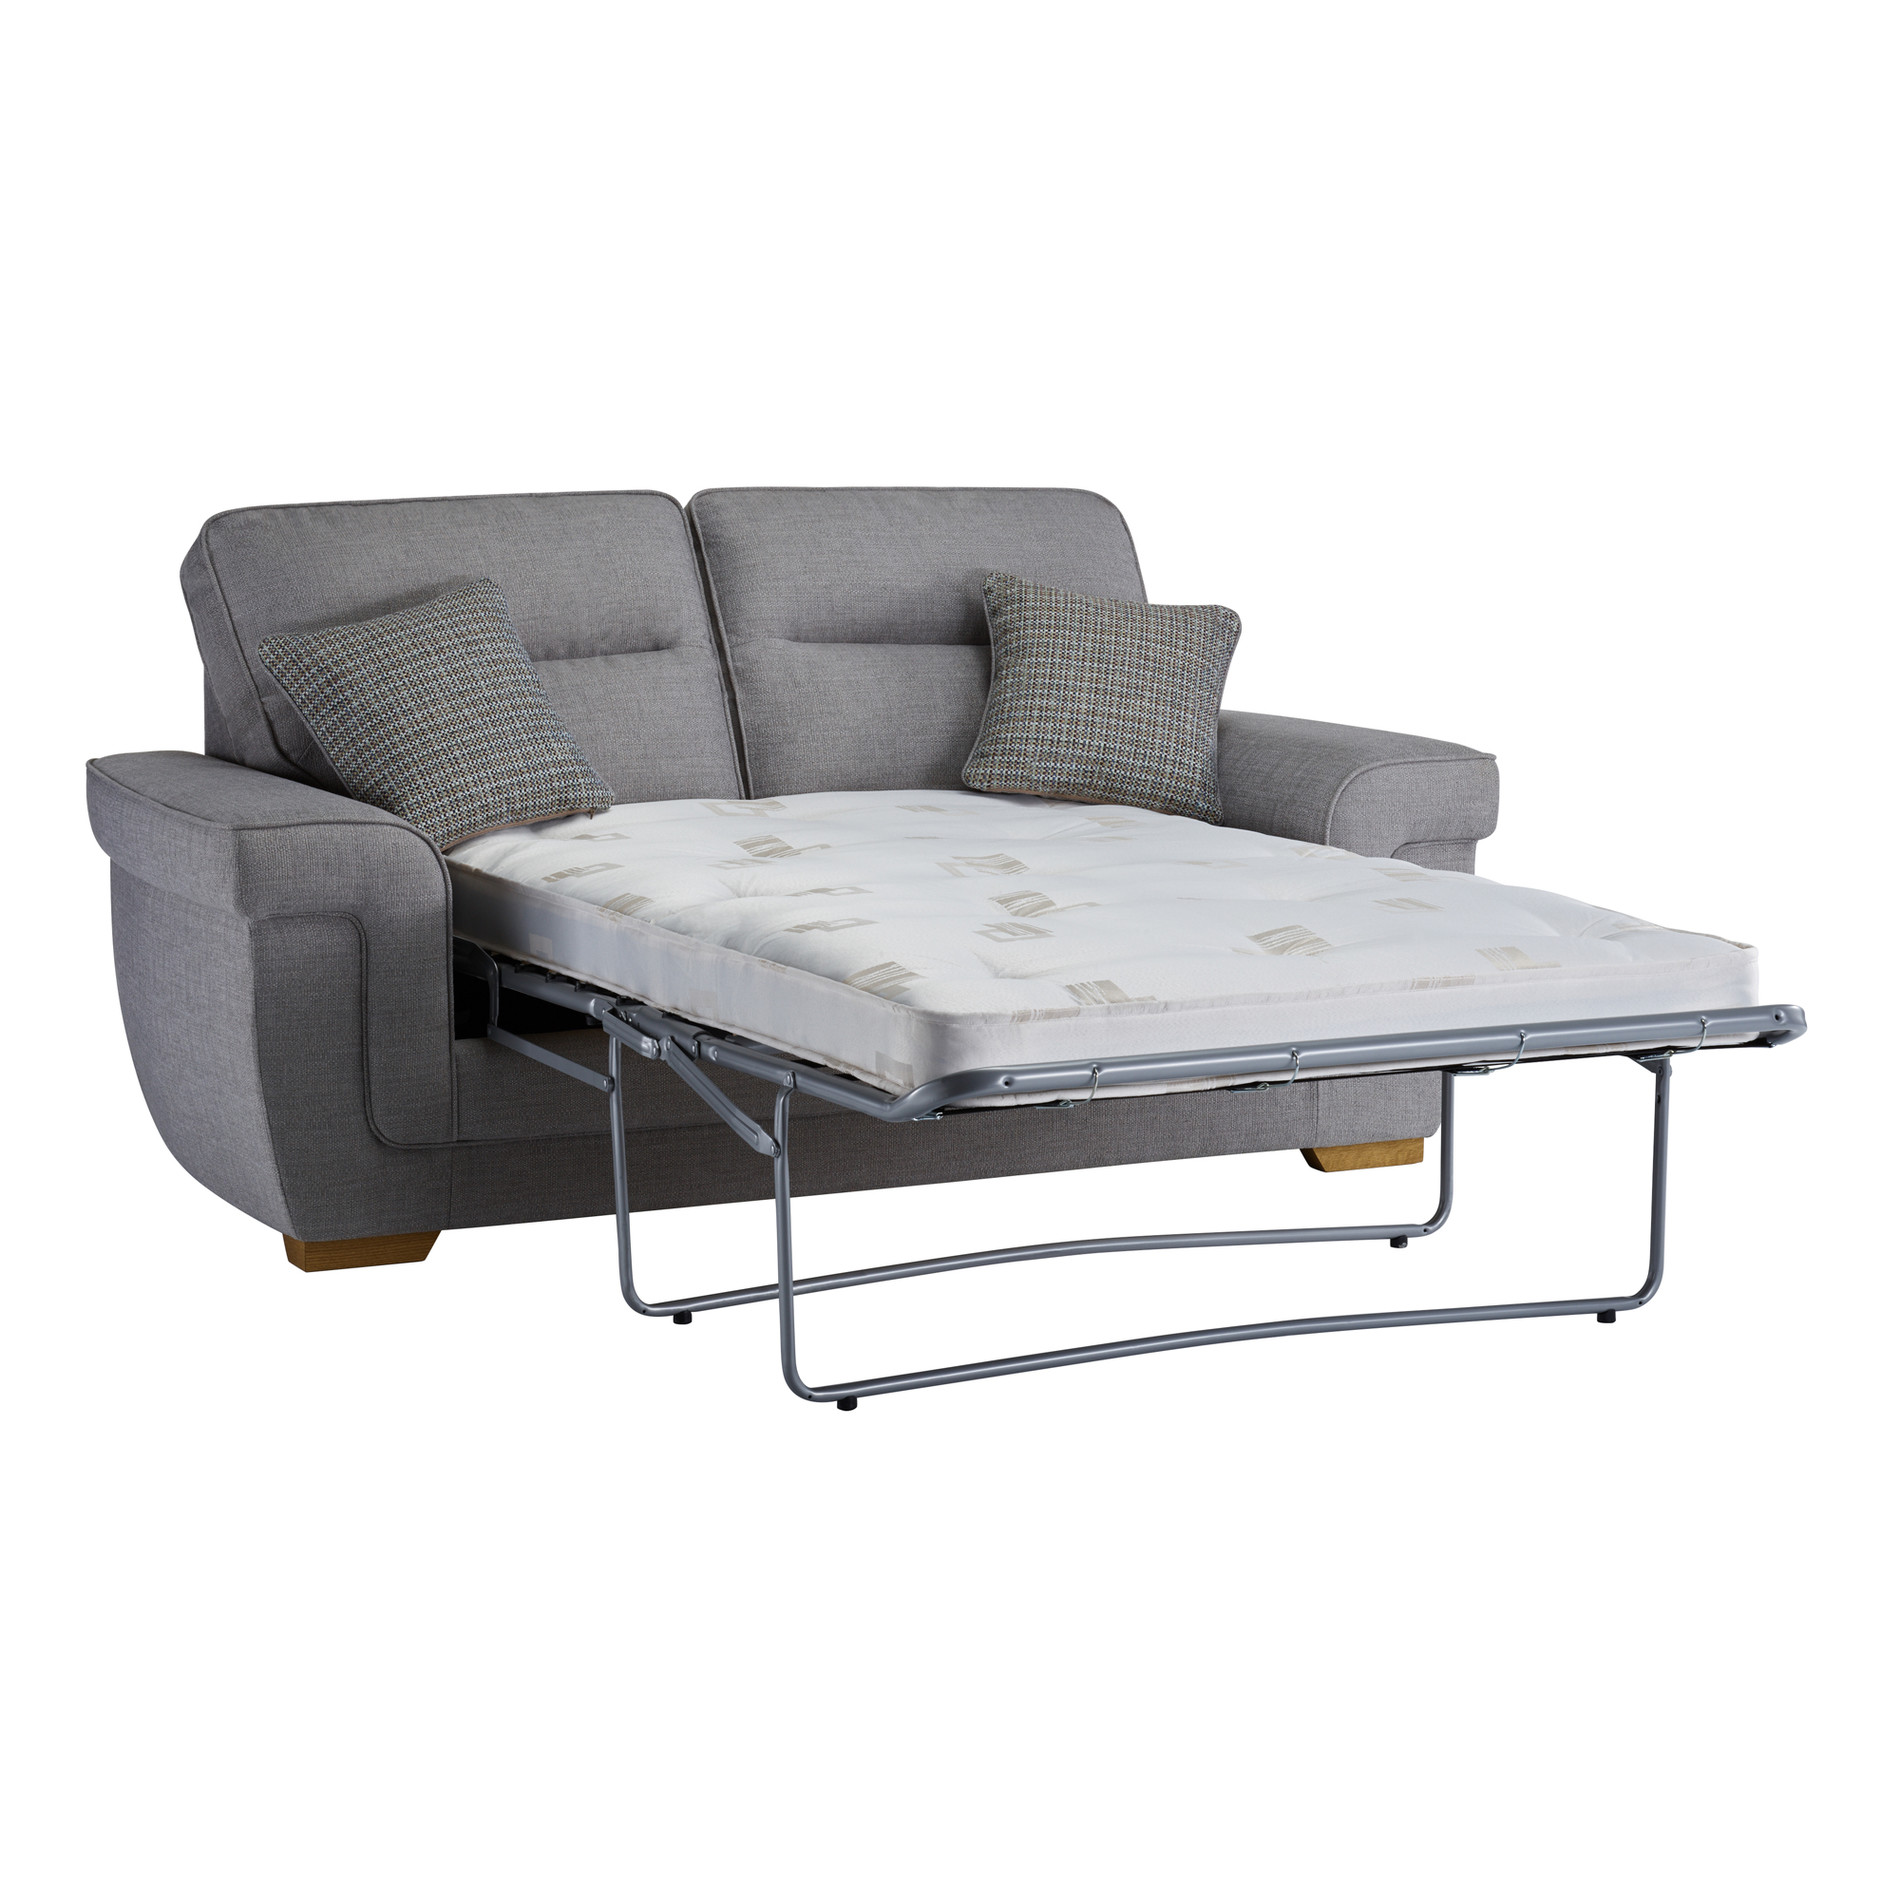 Kirby 2 Seater Sofa Bed with Deluxe Mattress Barley Silver